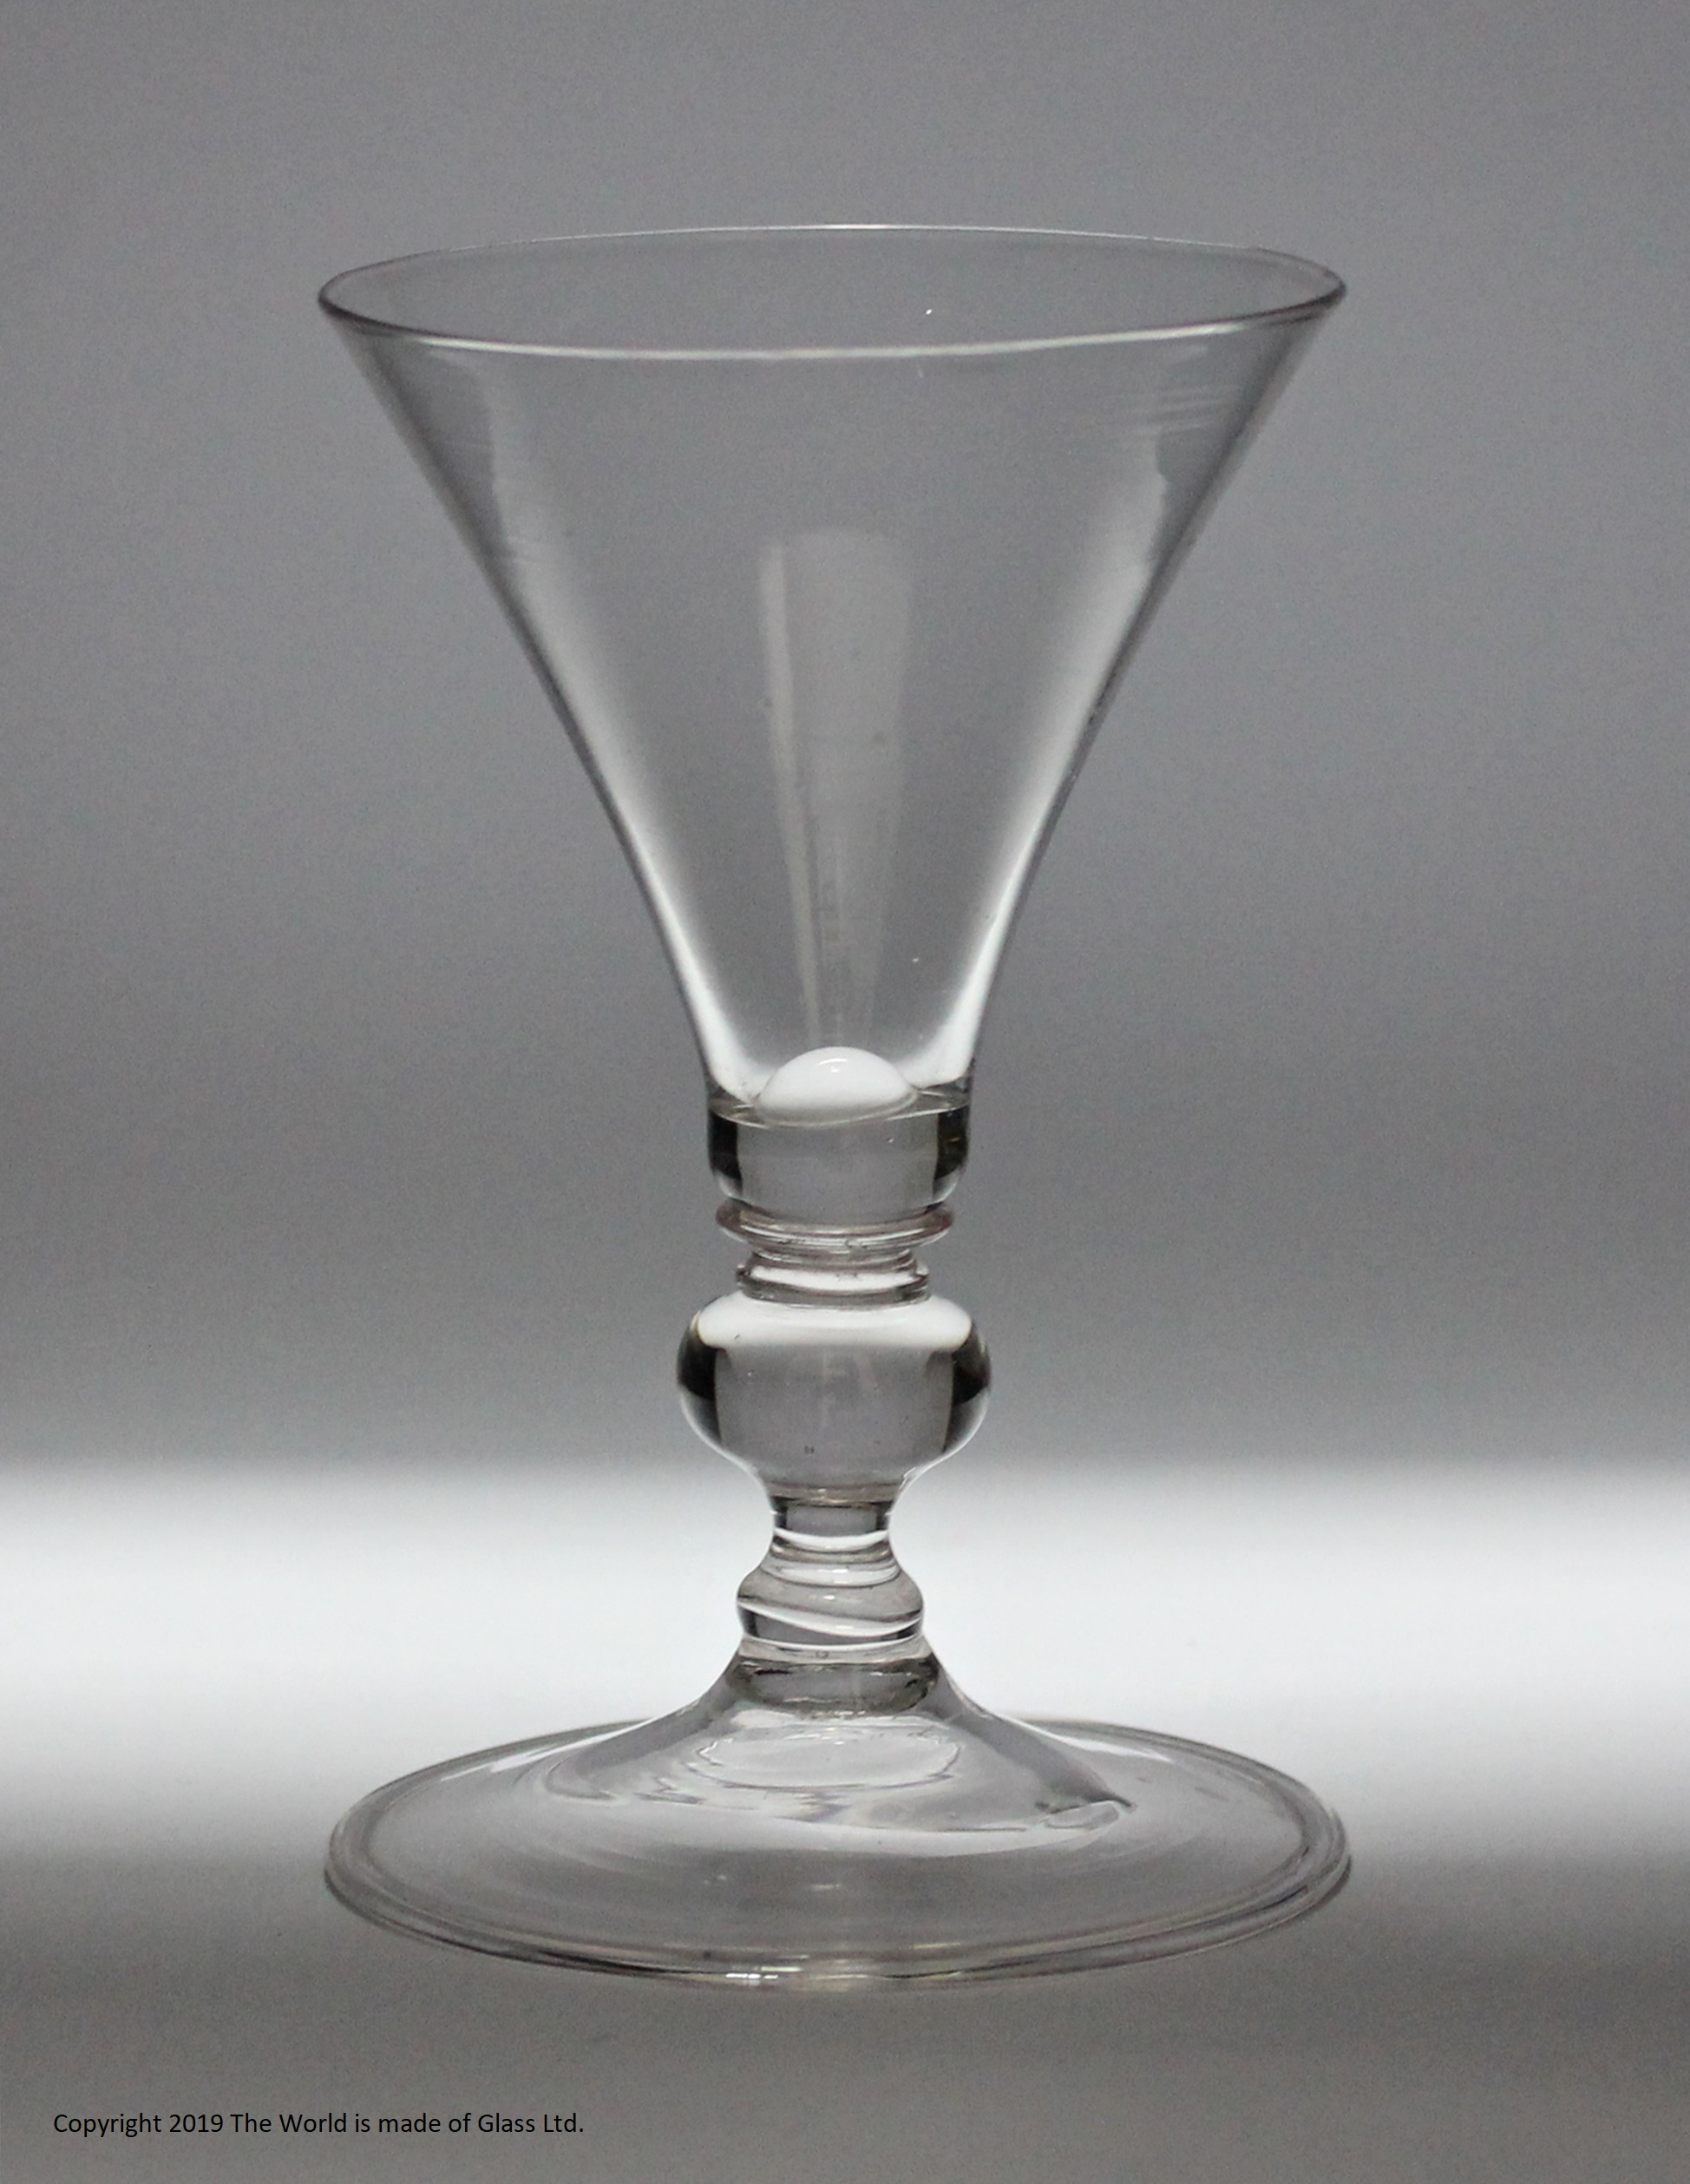 17th century facon de Venise wine glass